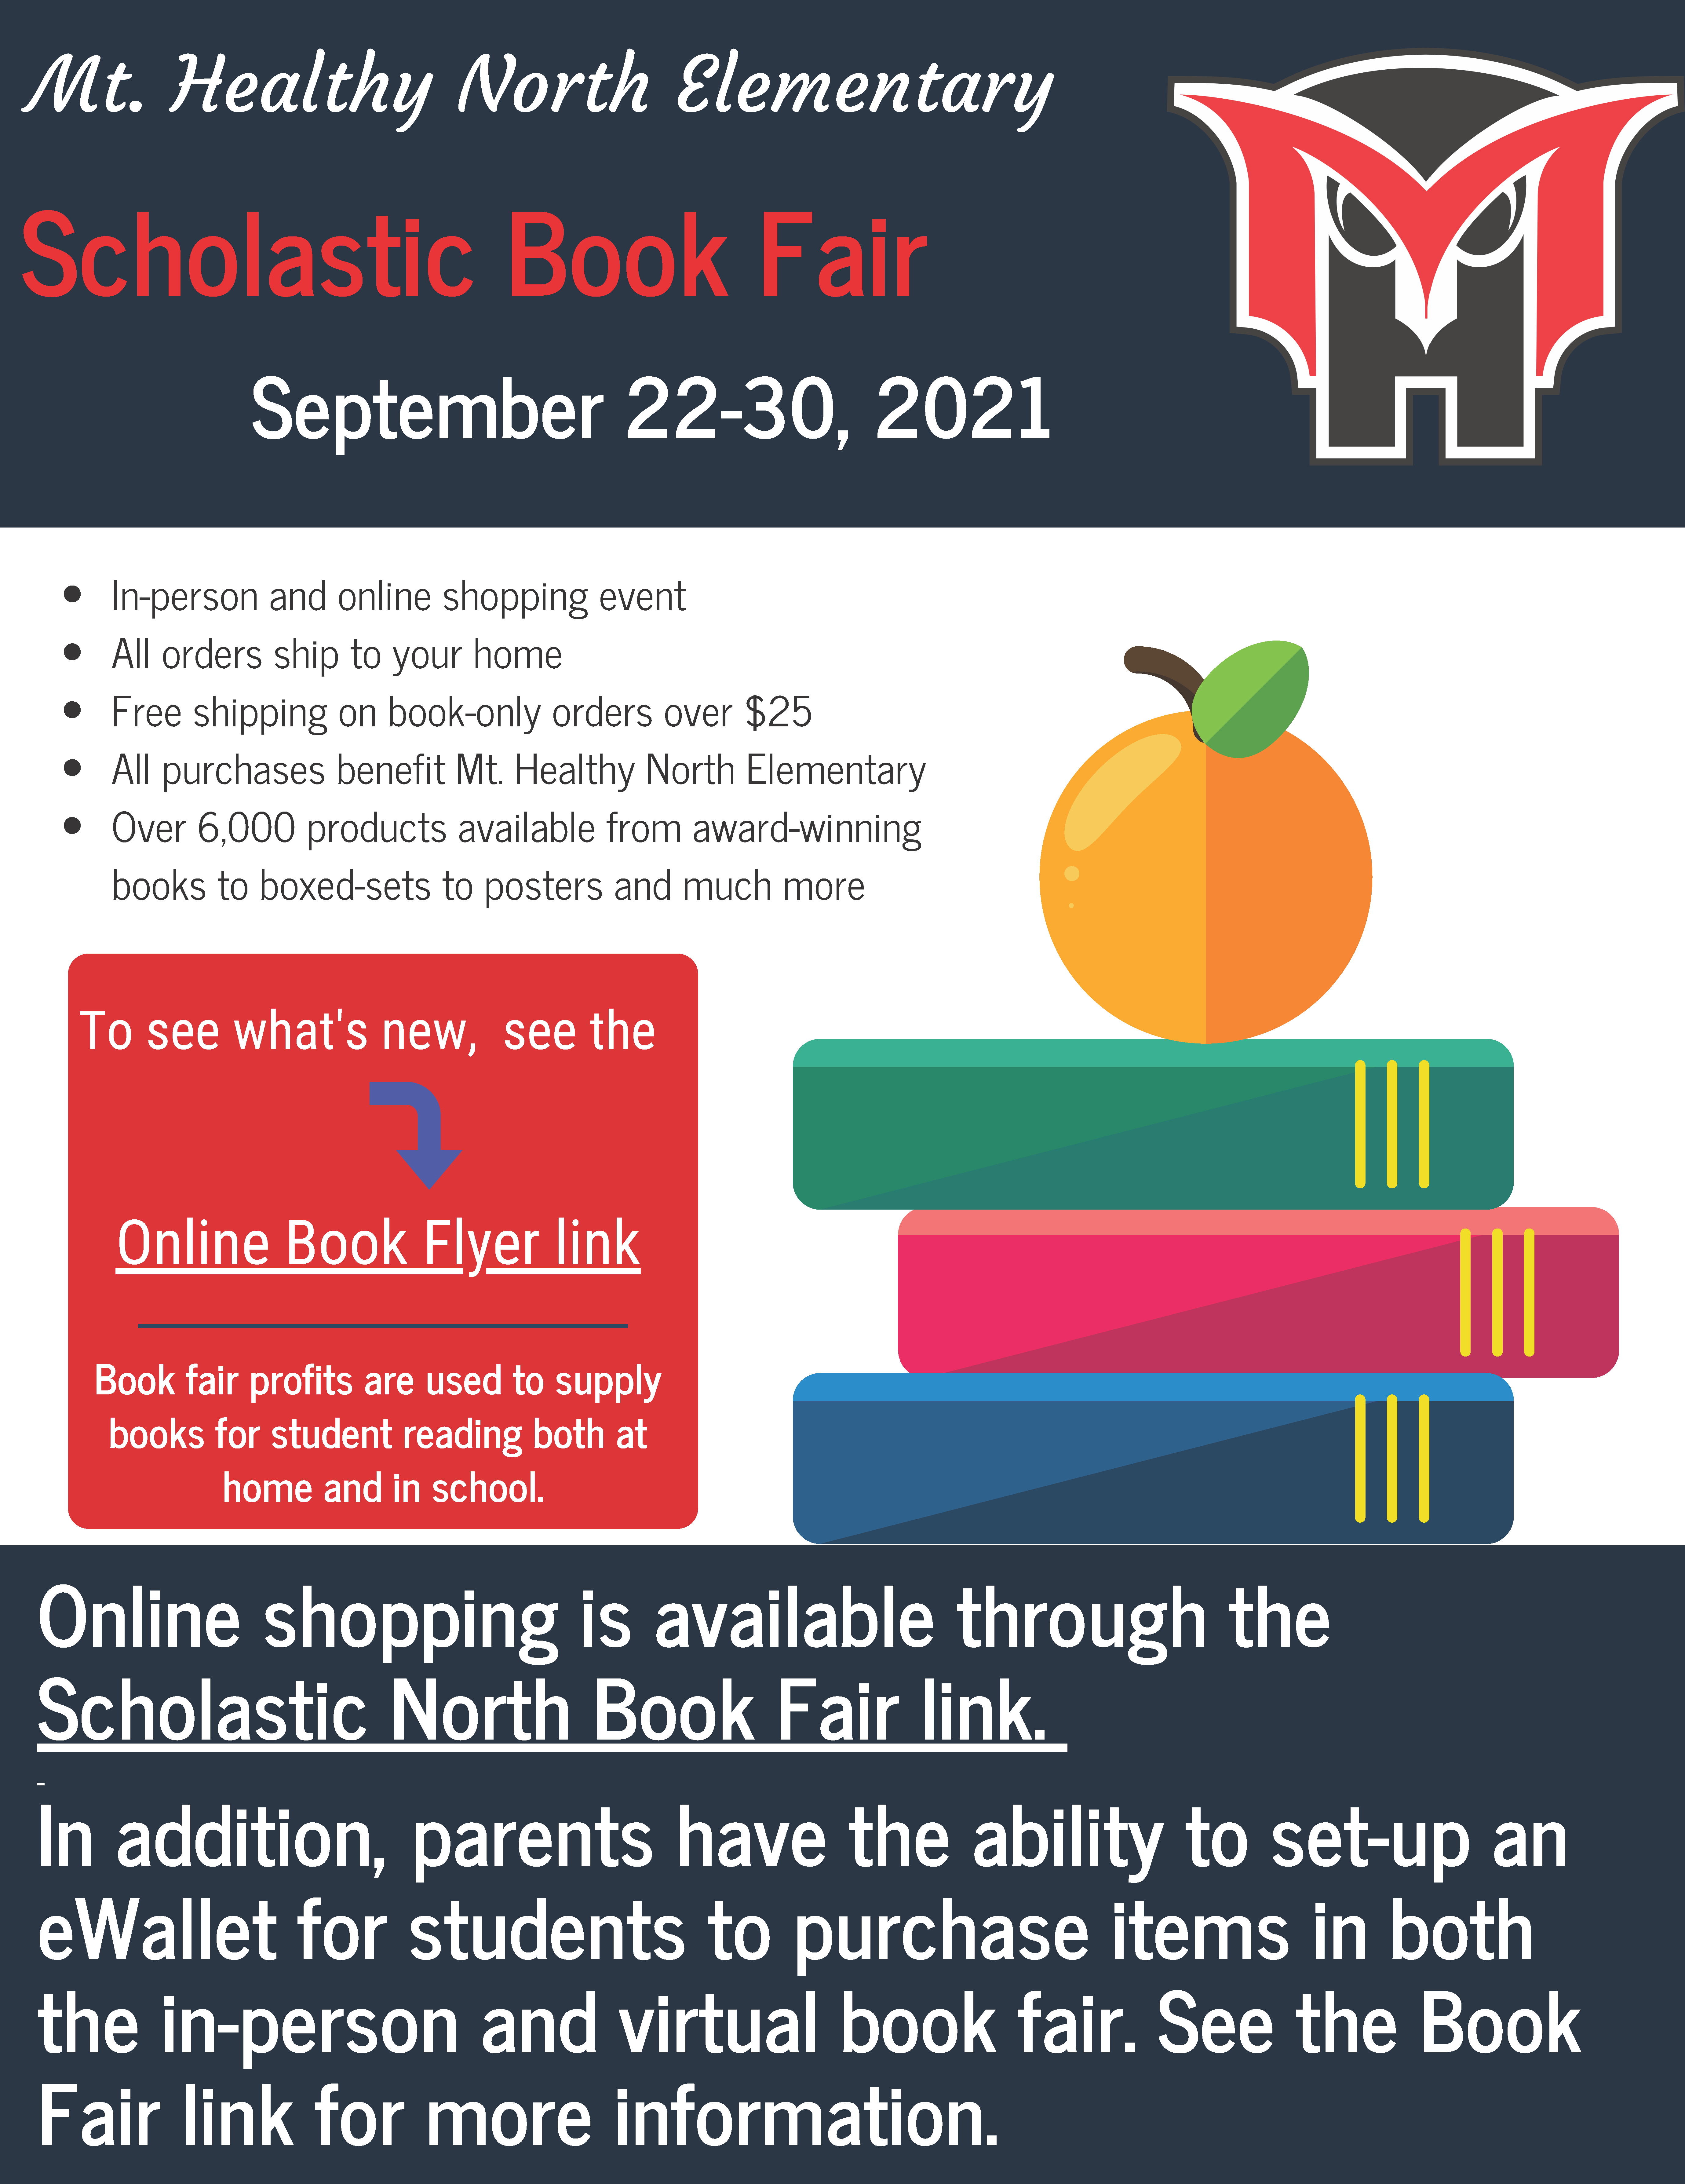 north elementary book fair flyer online information posted with the text